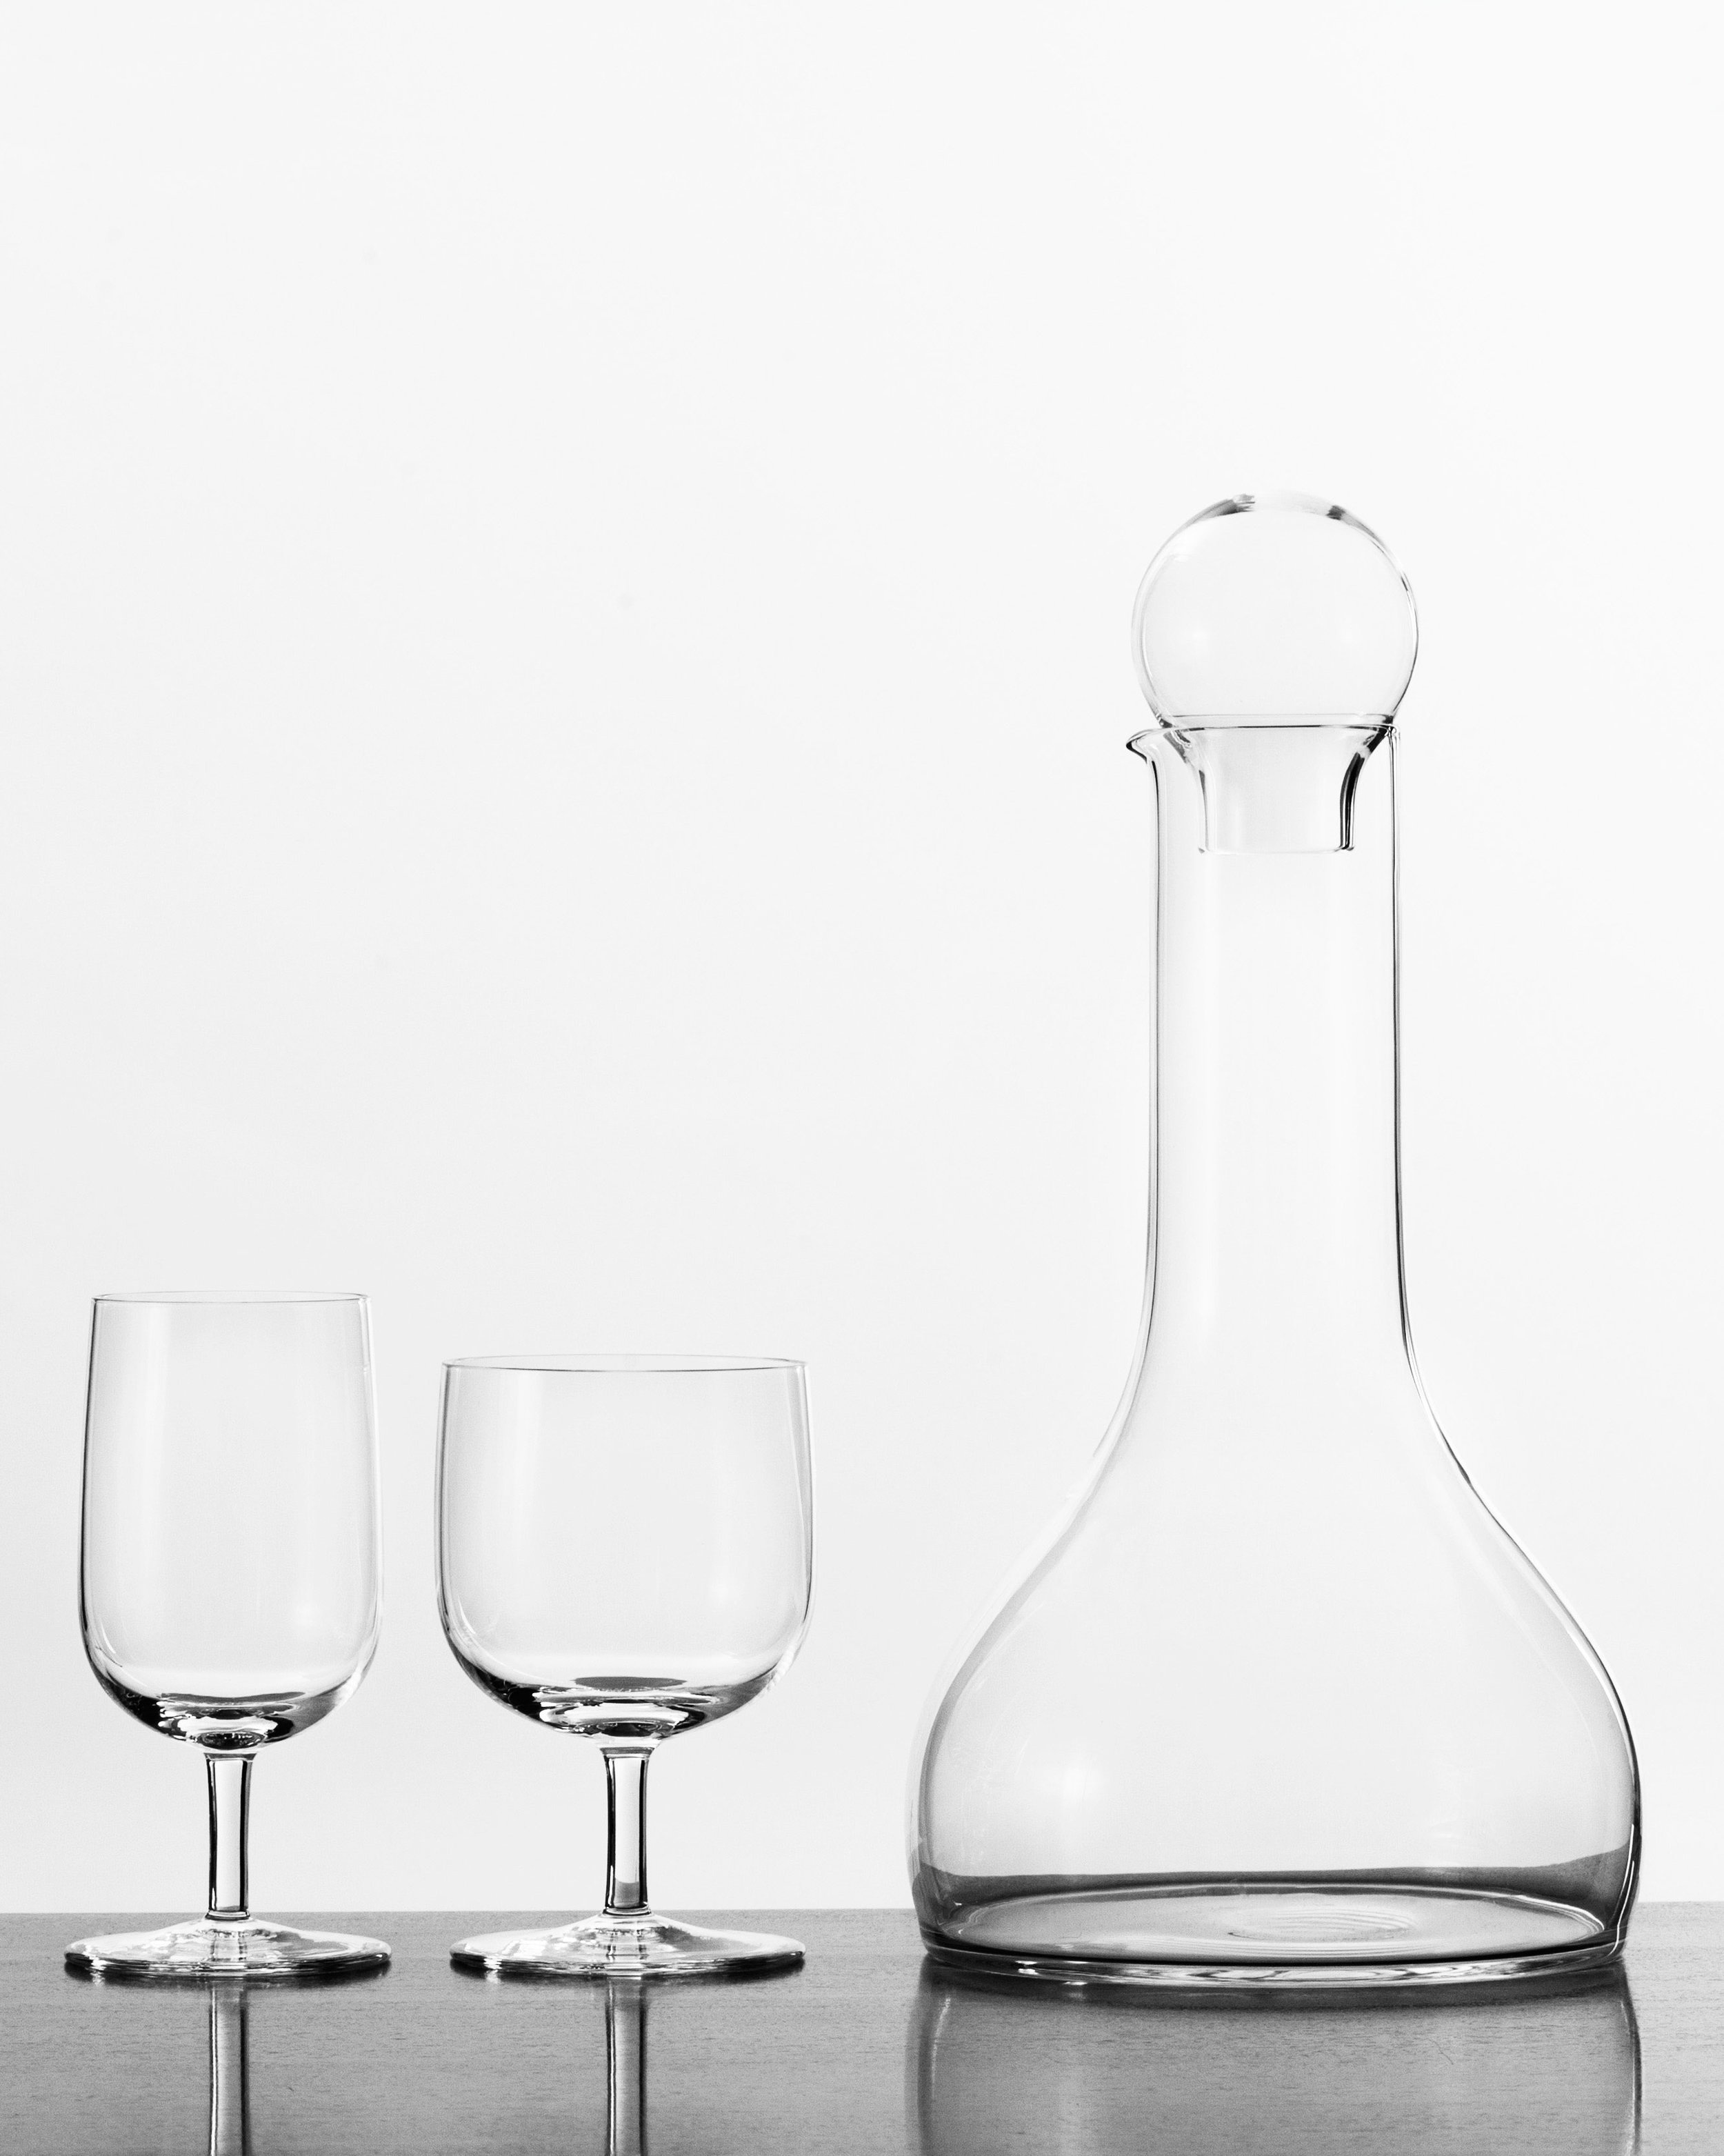 Winedecanter-and-white-and-red-wineglass-by-%C2%A9Tora-Urup.jpg